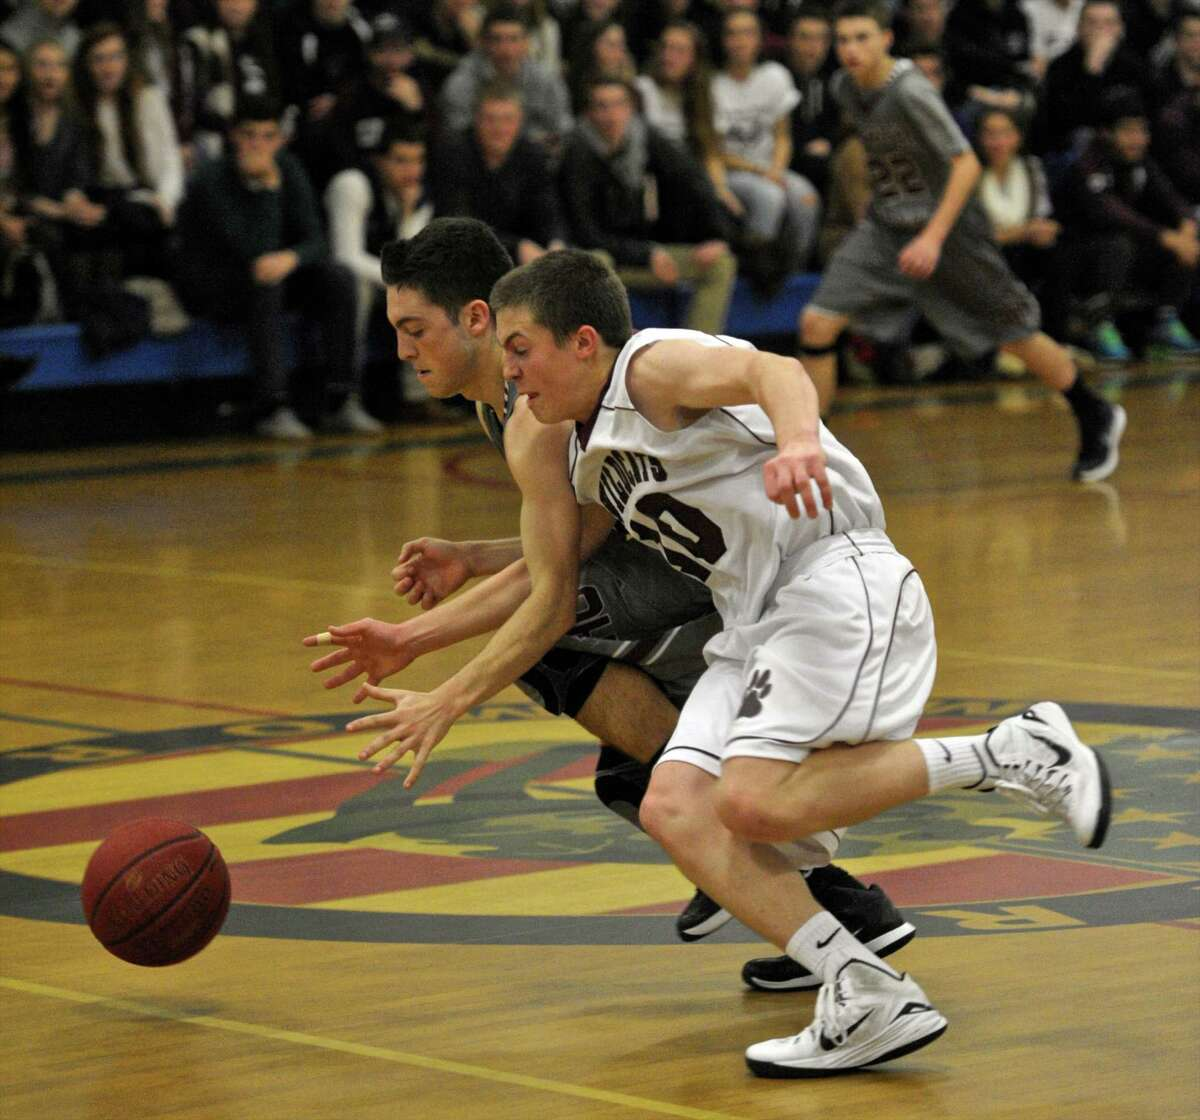 Bethel's joseph Liquori (10) steals the ball from North Haven's Bill Sgro (20) during the News Times Greater Danbury Tip Off Classic first round boys varsity game between the New Haven Indians and the Bethel Wildcats, on Thursday night, December 18, 2014, played at the Danbury War Memorial, Danbury, Ct.